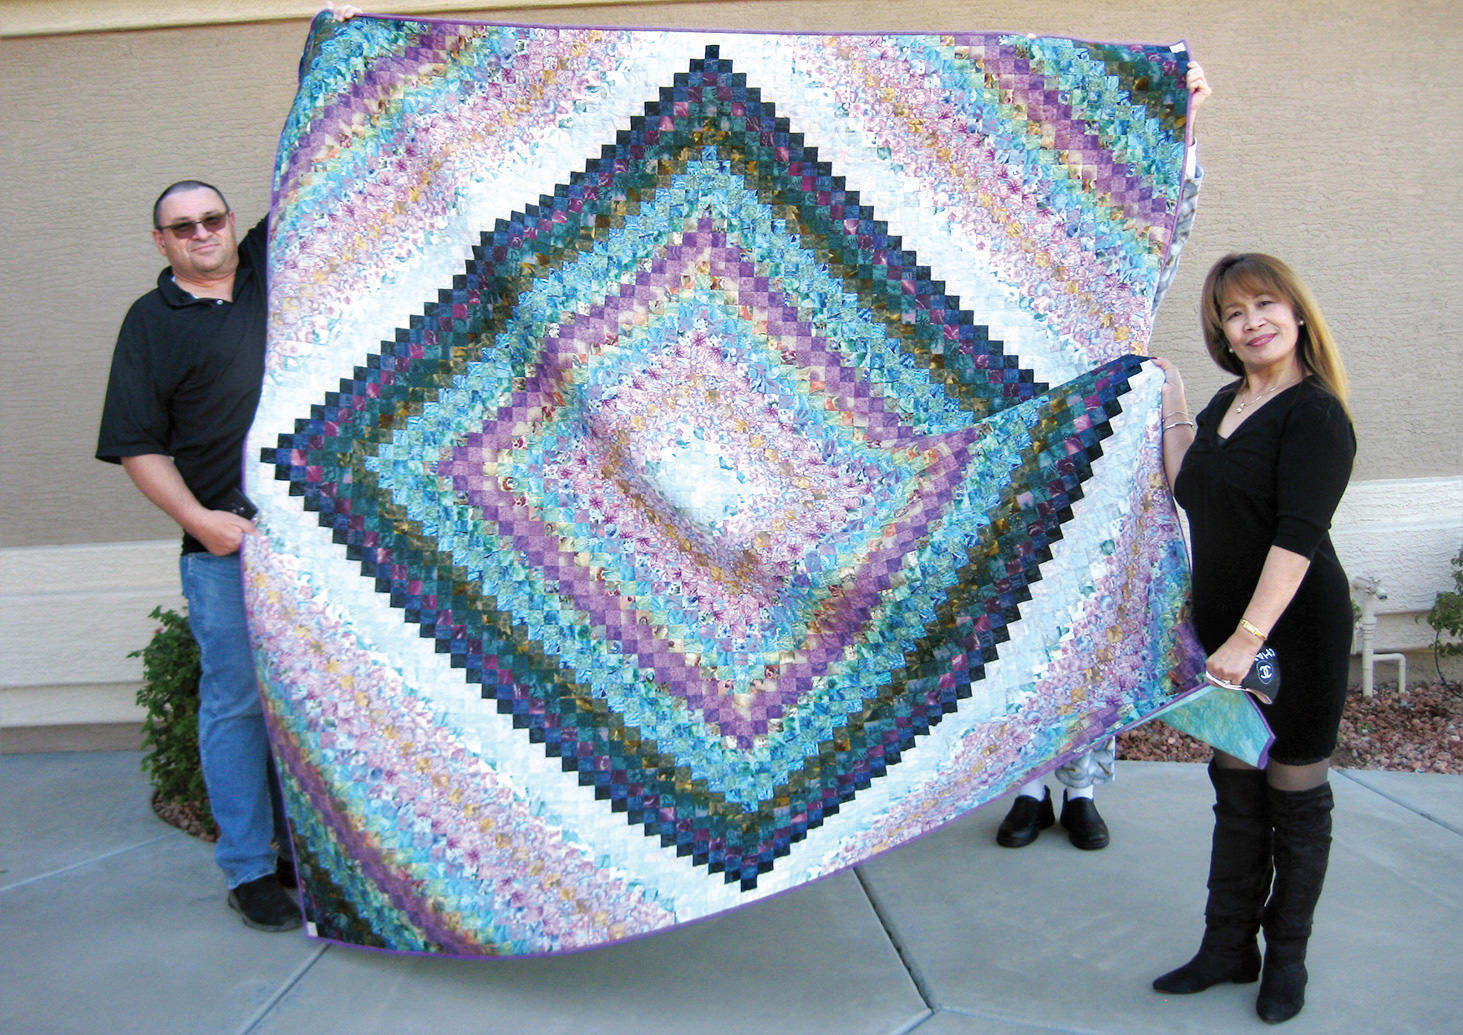 Joel and Virgie Manley with the 2020 Opportunity Quilt